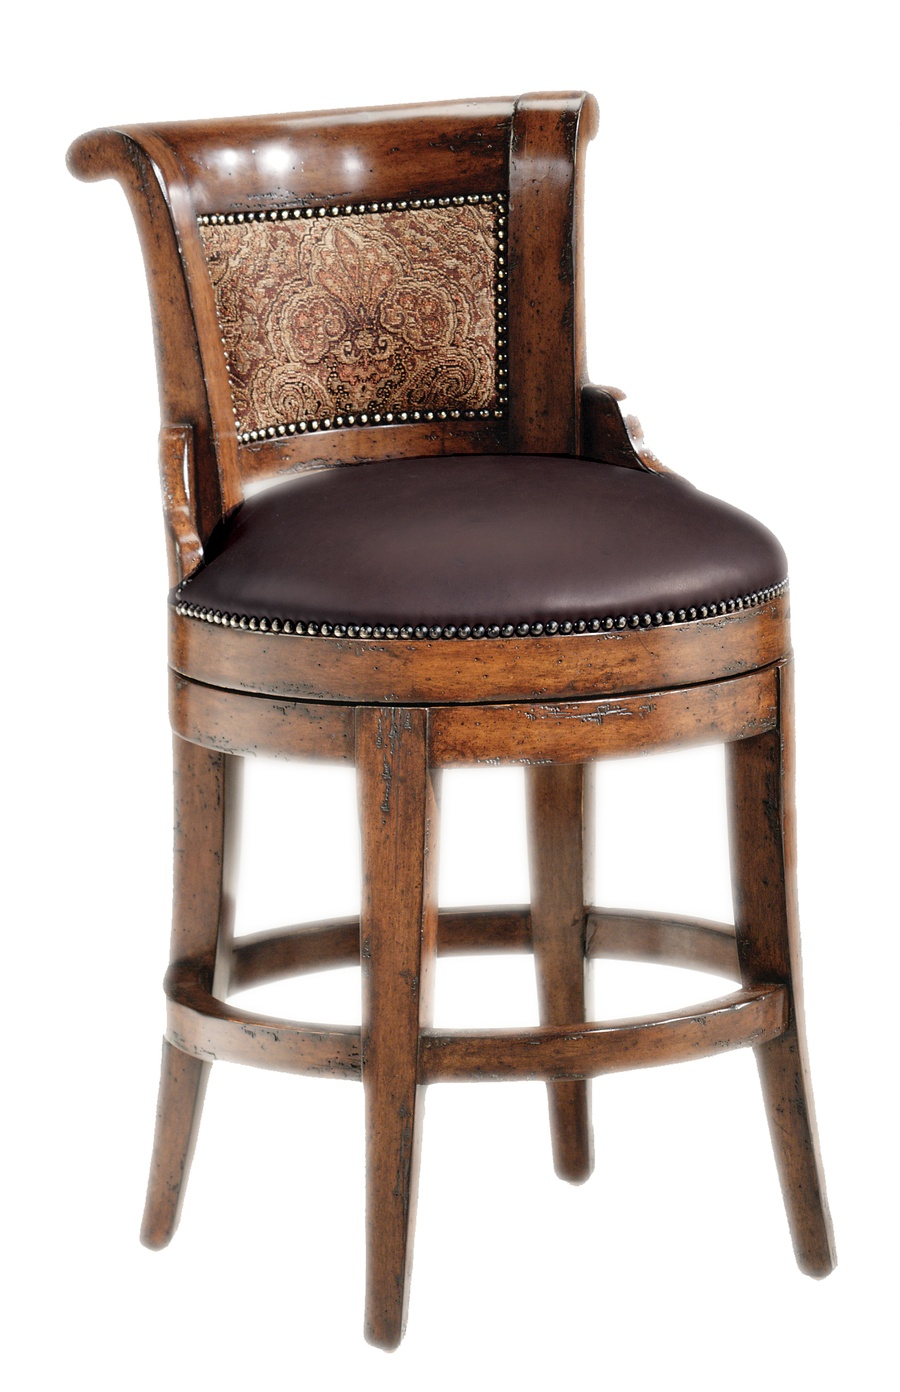 Hampton Counter Stool shown with:Tight seat and backOld World Hazelnut finishAntique Brass nailhead frame trim